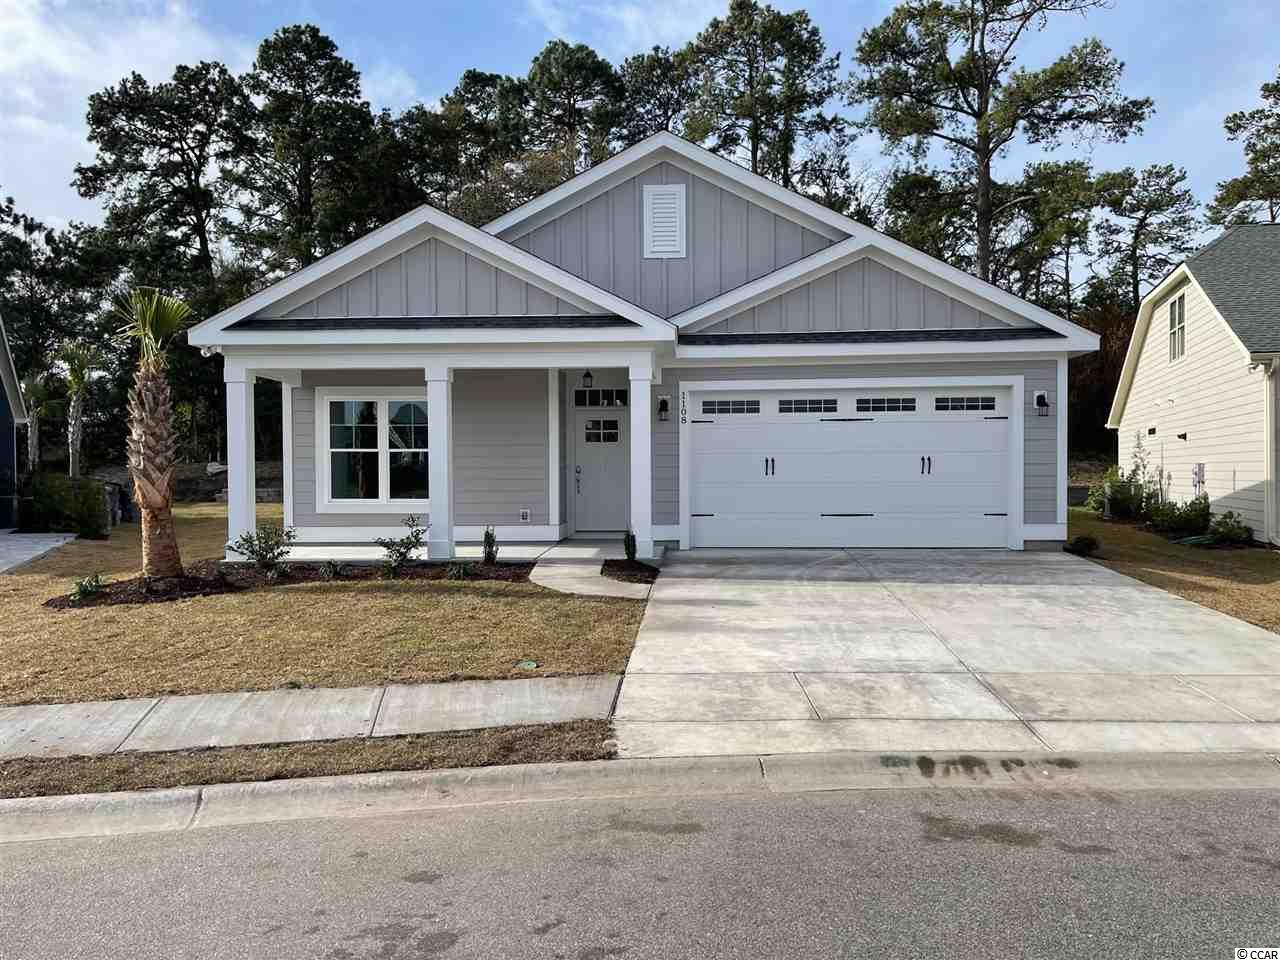 Great new construction Emerald 1 model 3br/2ba w/ an office/den on a large lot in Robber's Roost @ NMB!  This great new custom home features a master suite w/ 2 walk-in closets & ensuite bath, an office/den, large open kitchen/dining/family room, laundry/utility room, front & rear porches, a side patio, retaining wall & a 2 car garage!  Additionally, Robber's Roost at North Myrtle Beach is a natural gas community east of Hwy 17 with a community pool coming for the 2021 swimming season & is located within walking, bicycle or golf cart distance to Tilghman Beach, the beautiful Atlantic Ocean w/ 60 miles of white sandy beaches and is close to Coastal North Town Center (shopping, dining, beauty, pets), Shag dance capital Main St., golf, boating/fishing in the ICW, entertainment and all the amenities of living in Coastal South Carolina. Whether a primary residence or your vacation get-a-way, Don't Miss ~ come live the dream!  (*Many new plans to choose from!)